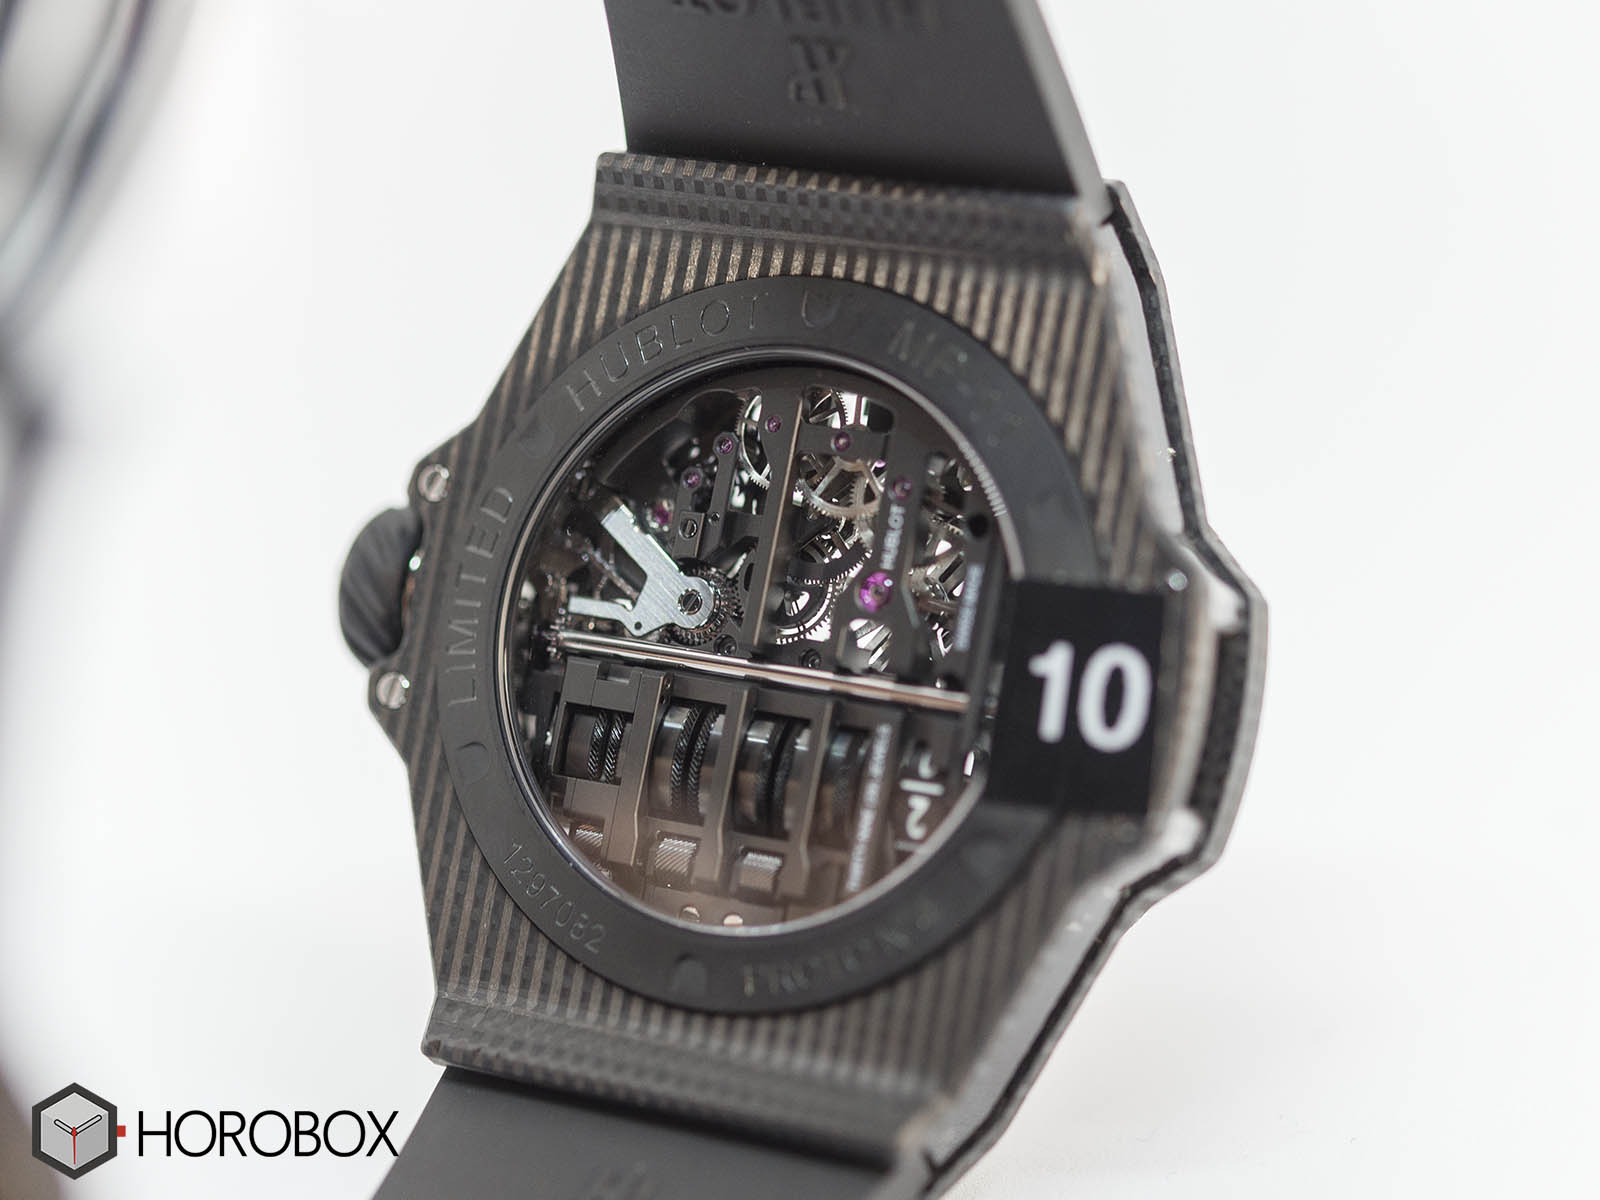 911-qd-0123-rx-hublot-mp-11-power-reserve-14-days-11.jpg